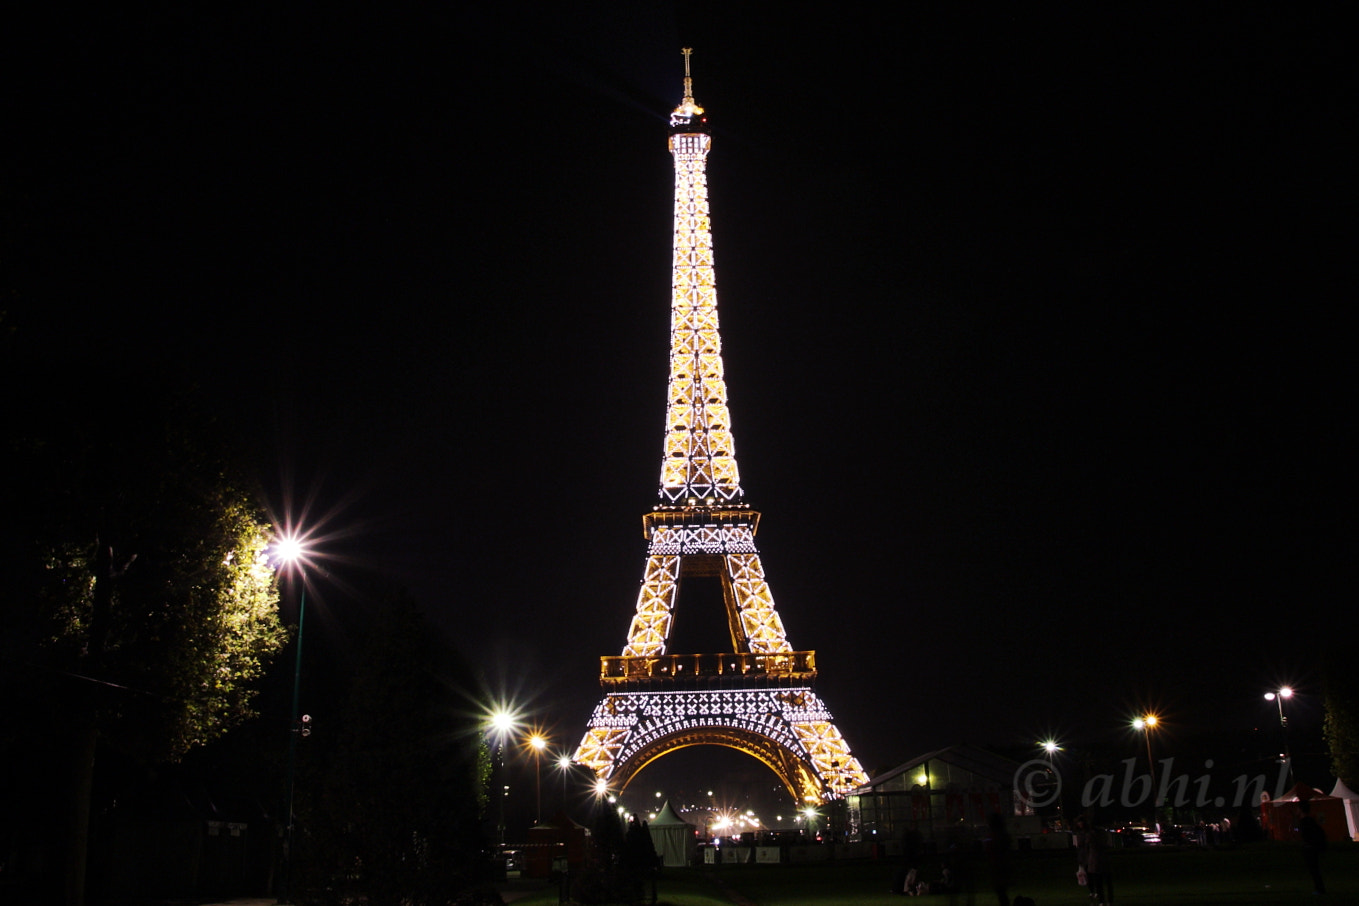 Photograph Eiffel tower at night by Abhishek D on 500px